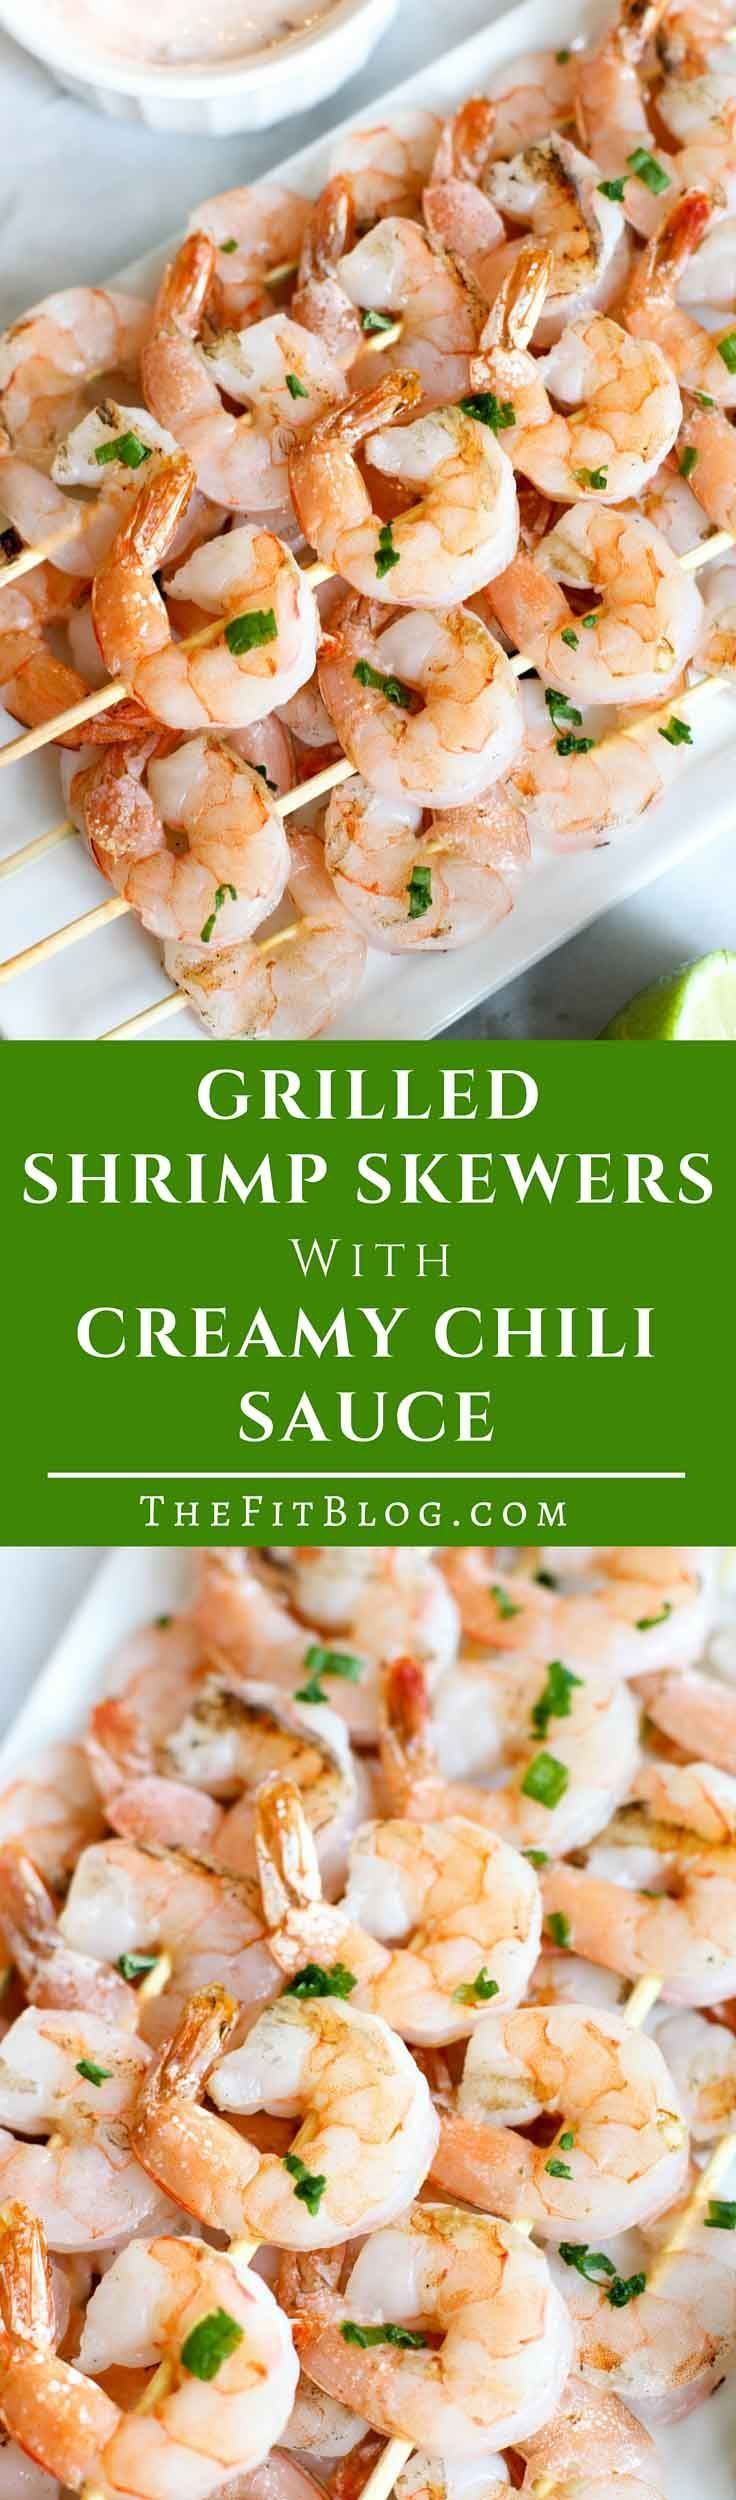 These Grilled Shrimp Skewers With A Creamy Chili Sauce One Is Of The  Easiest, Healthiest